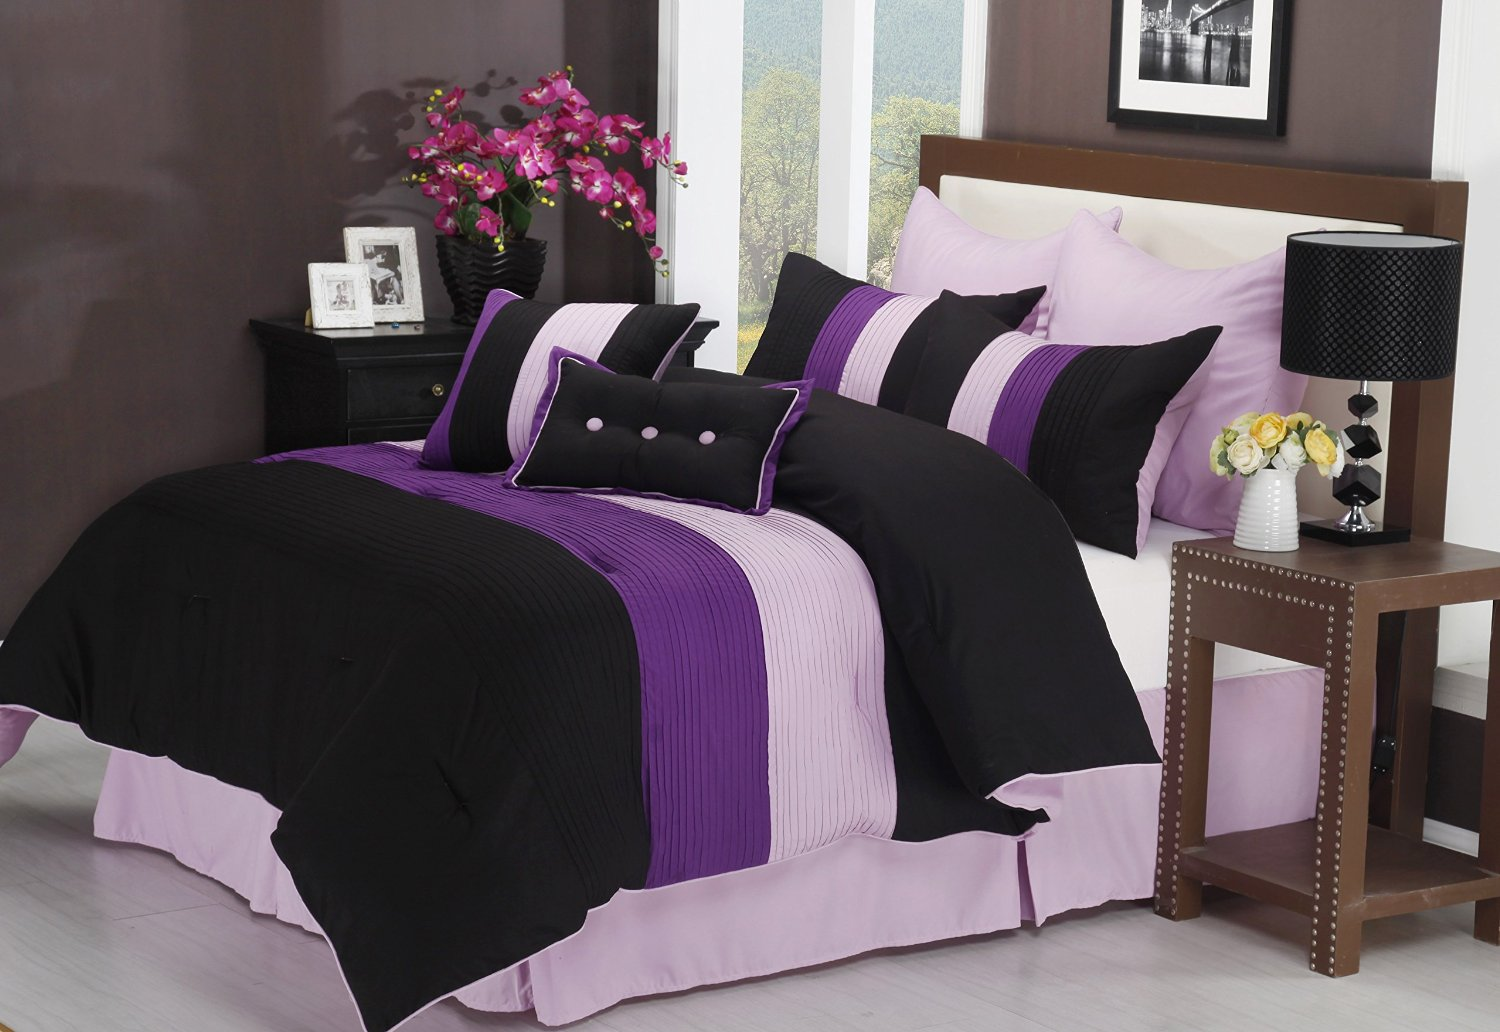 Total Fab: Purple Black and White Bedding Sets: Drama Uplifted